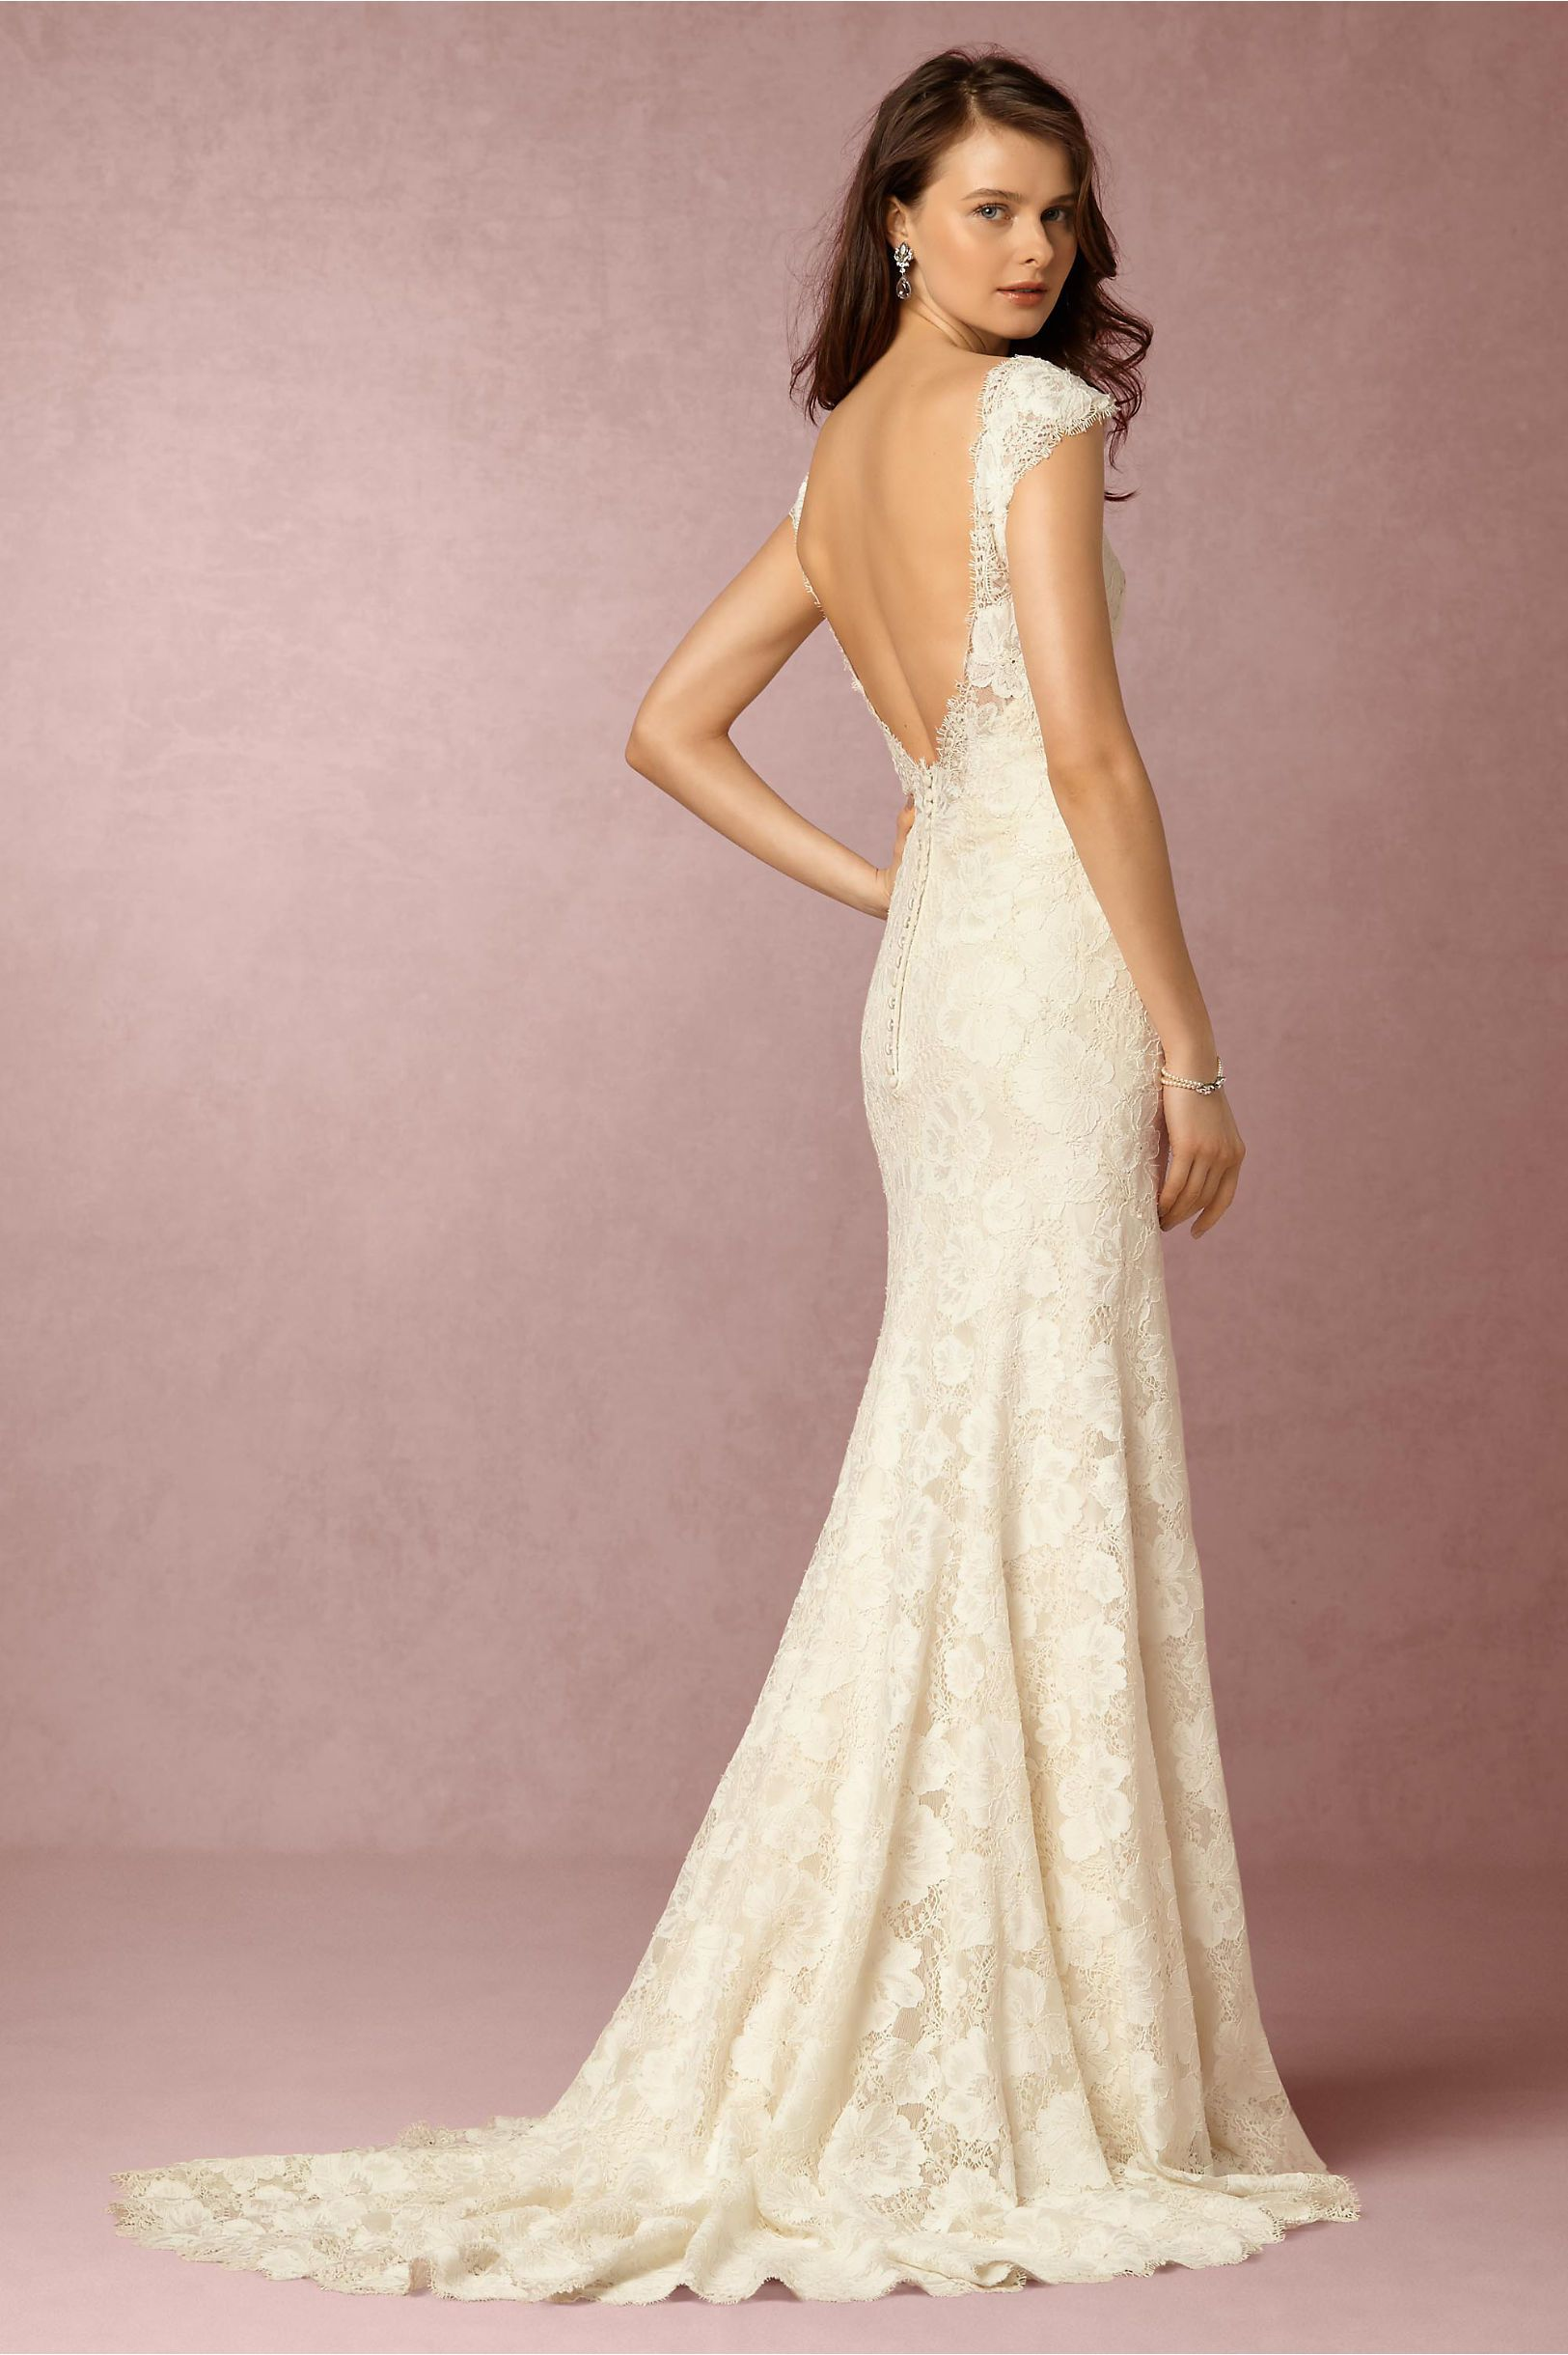 BHLDN Amalia Gown in Bride Wedding Dresses at BHLDN | Dresses ...